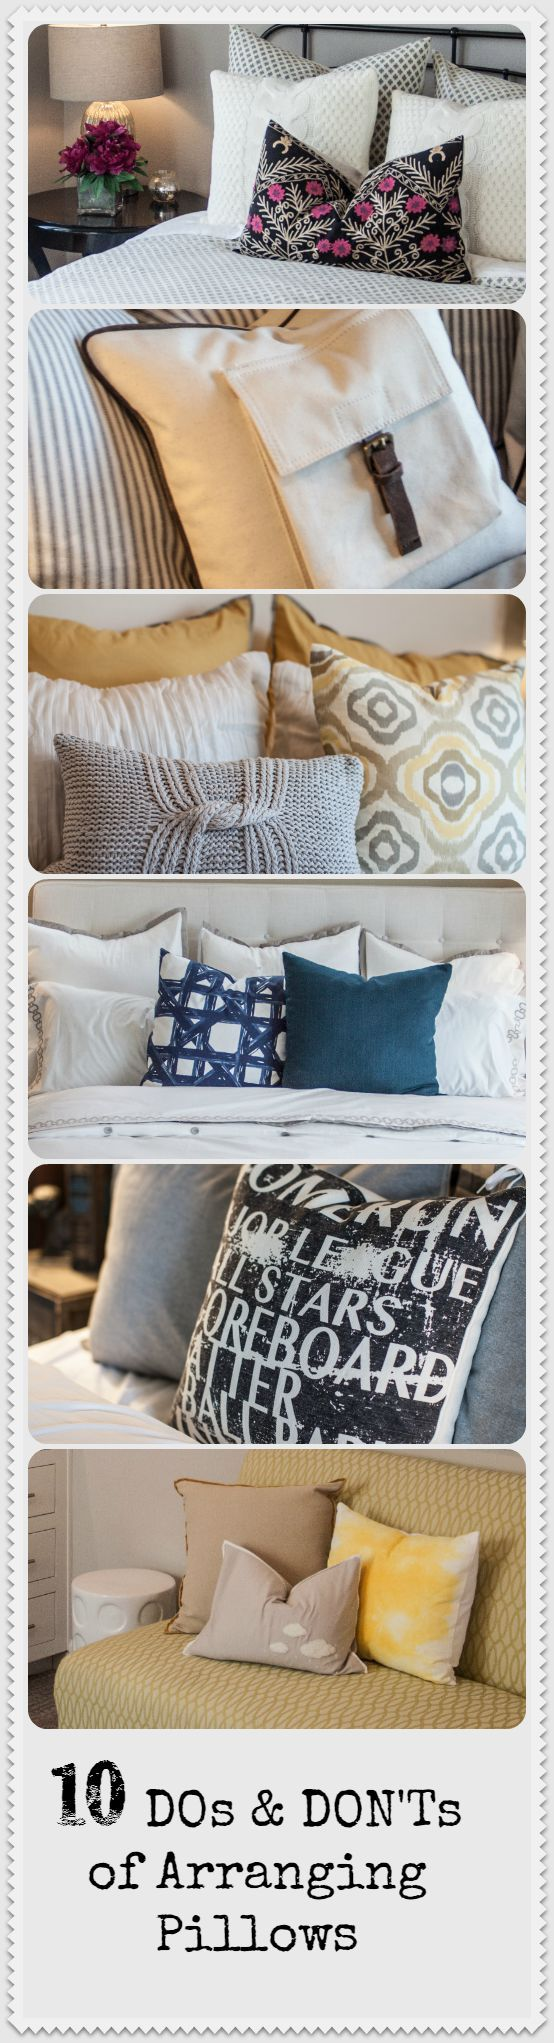 10 DOs and DON'Ts of Arranging Pillows A well, Dr. who